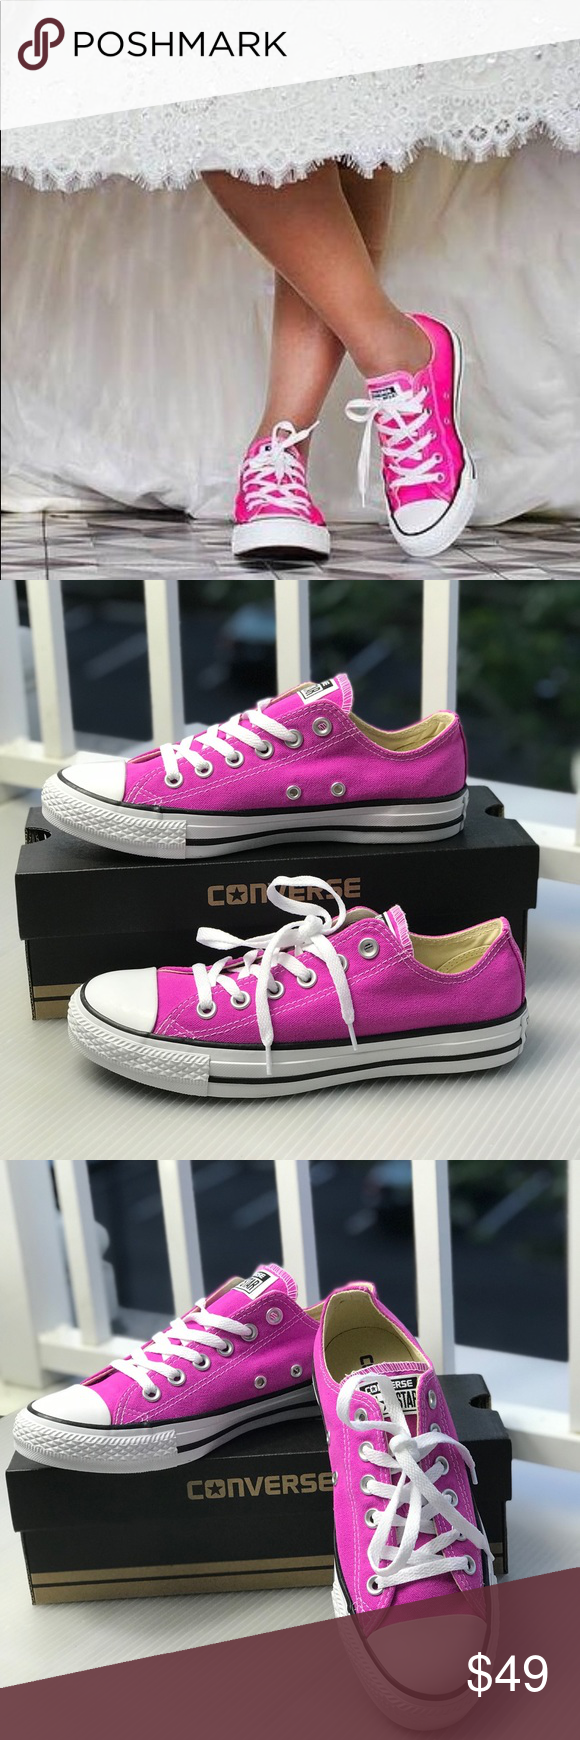 NWT Converse AdVulc AllStar Purple LT W AUTHENTIC Brand new with box. Price  is firm 8f1dd869d